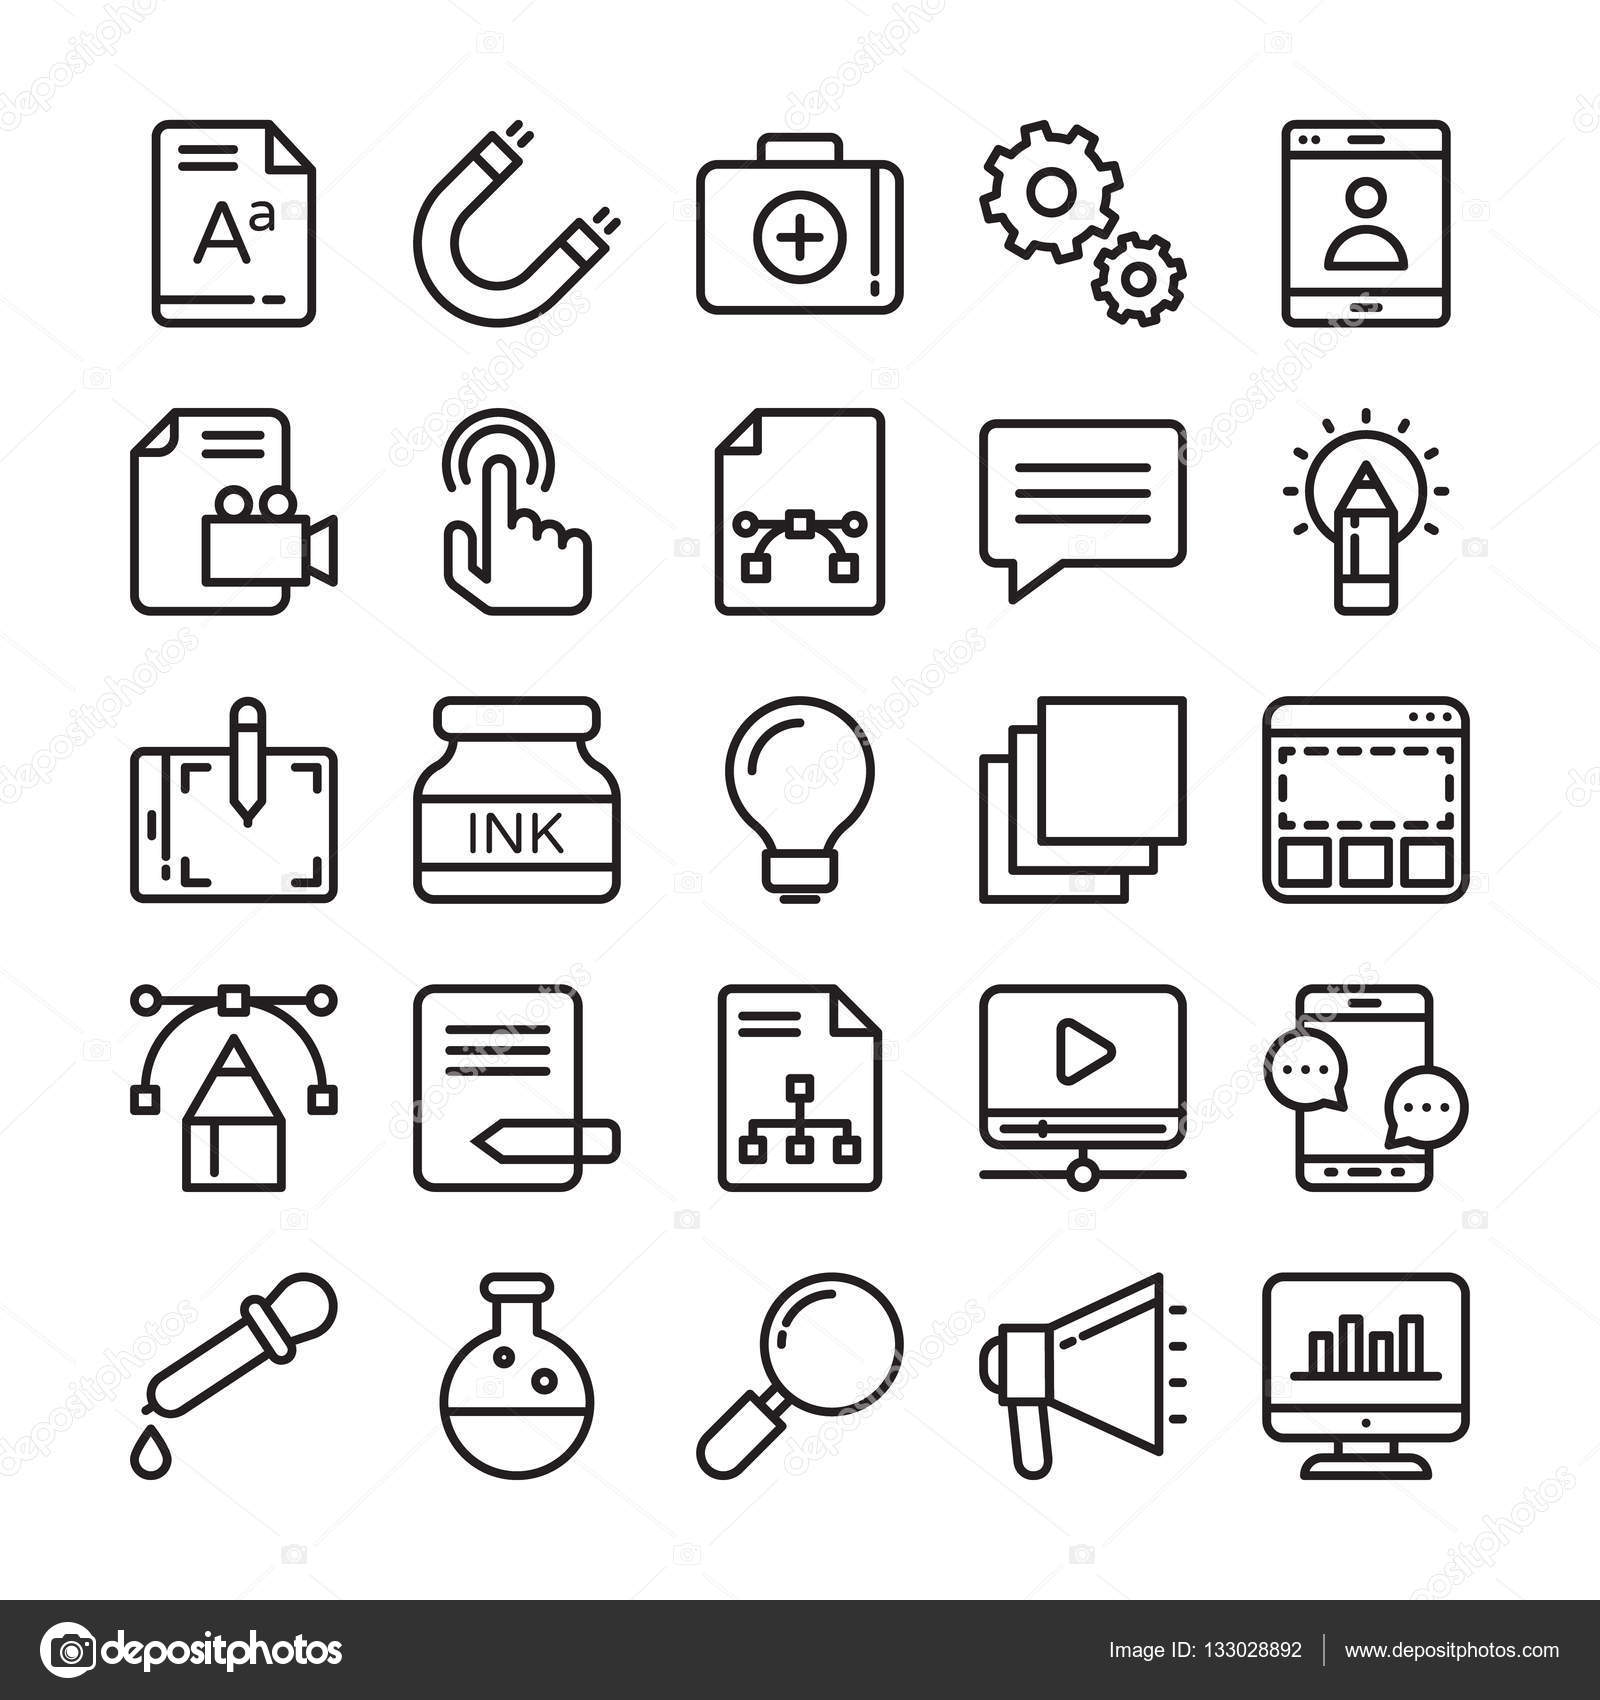 web design and development vector icons 2 stock vector ID Tech Summer Camps set of web design and development vector icons for your web design projects tech publications or web topics in your designs vector by creativestall